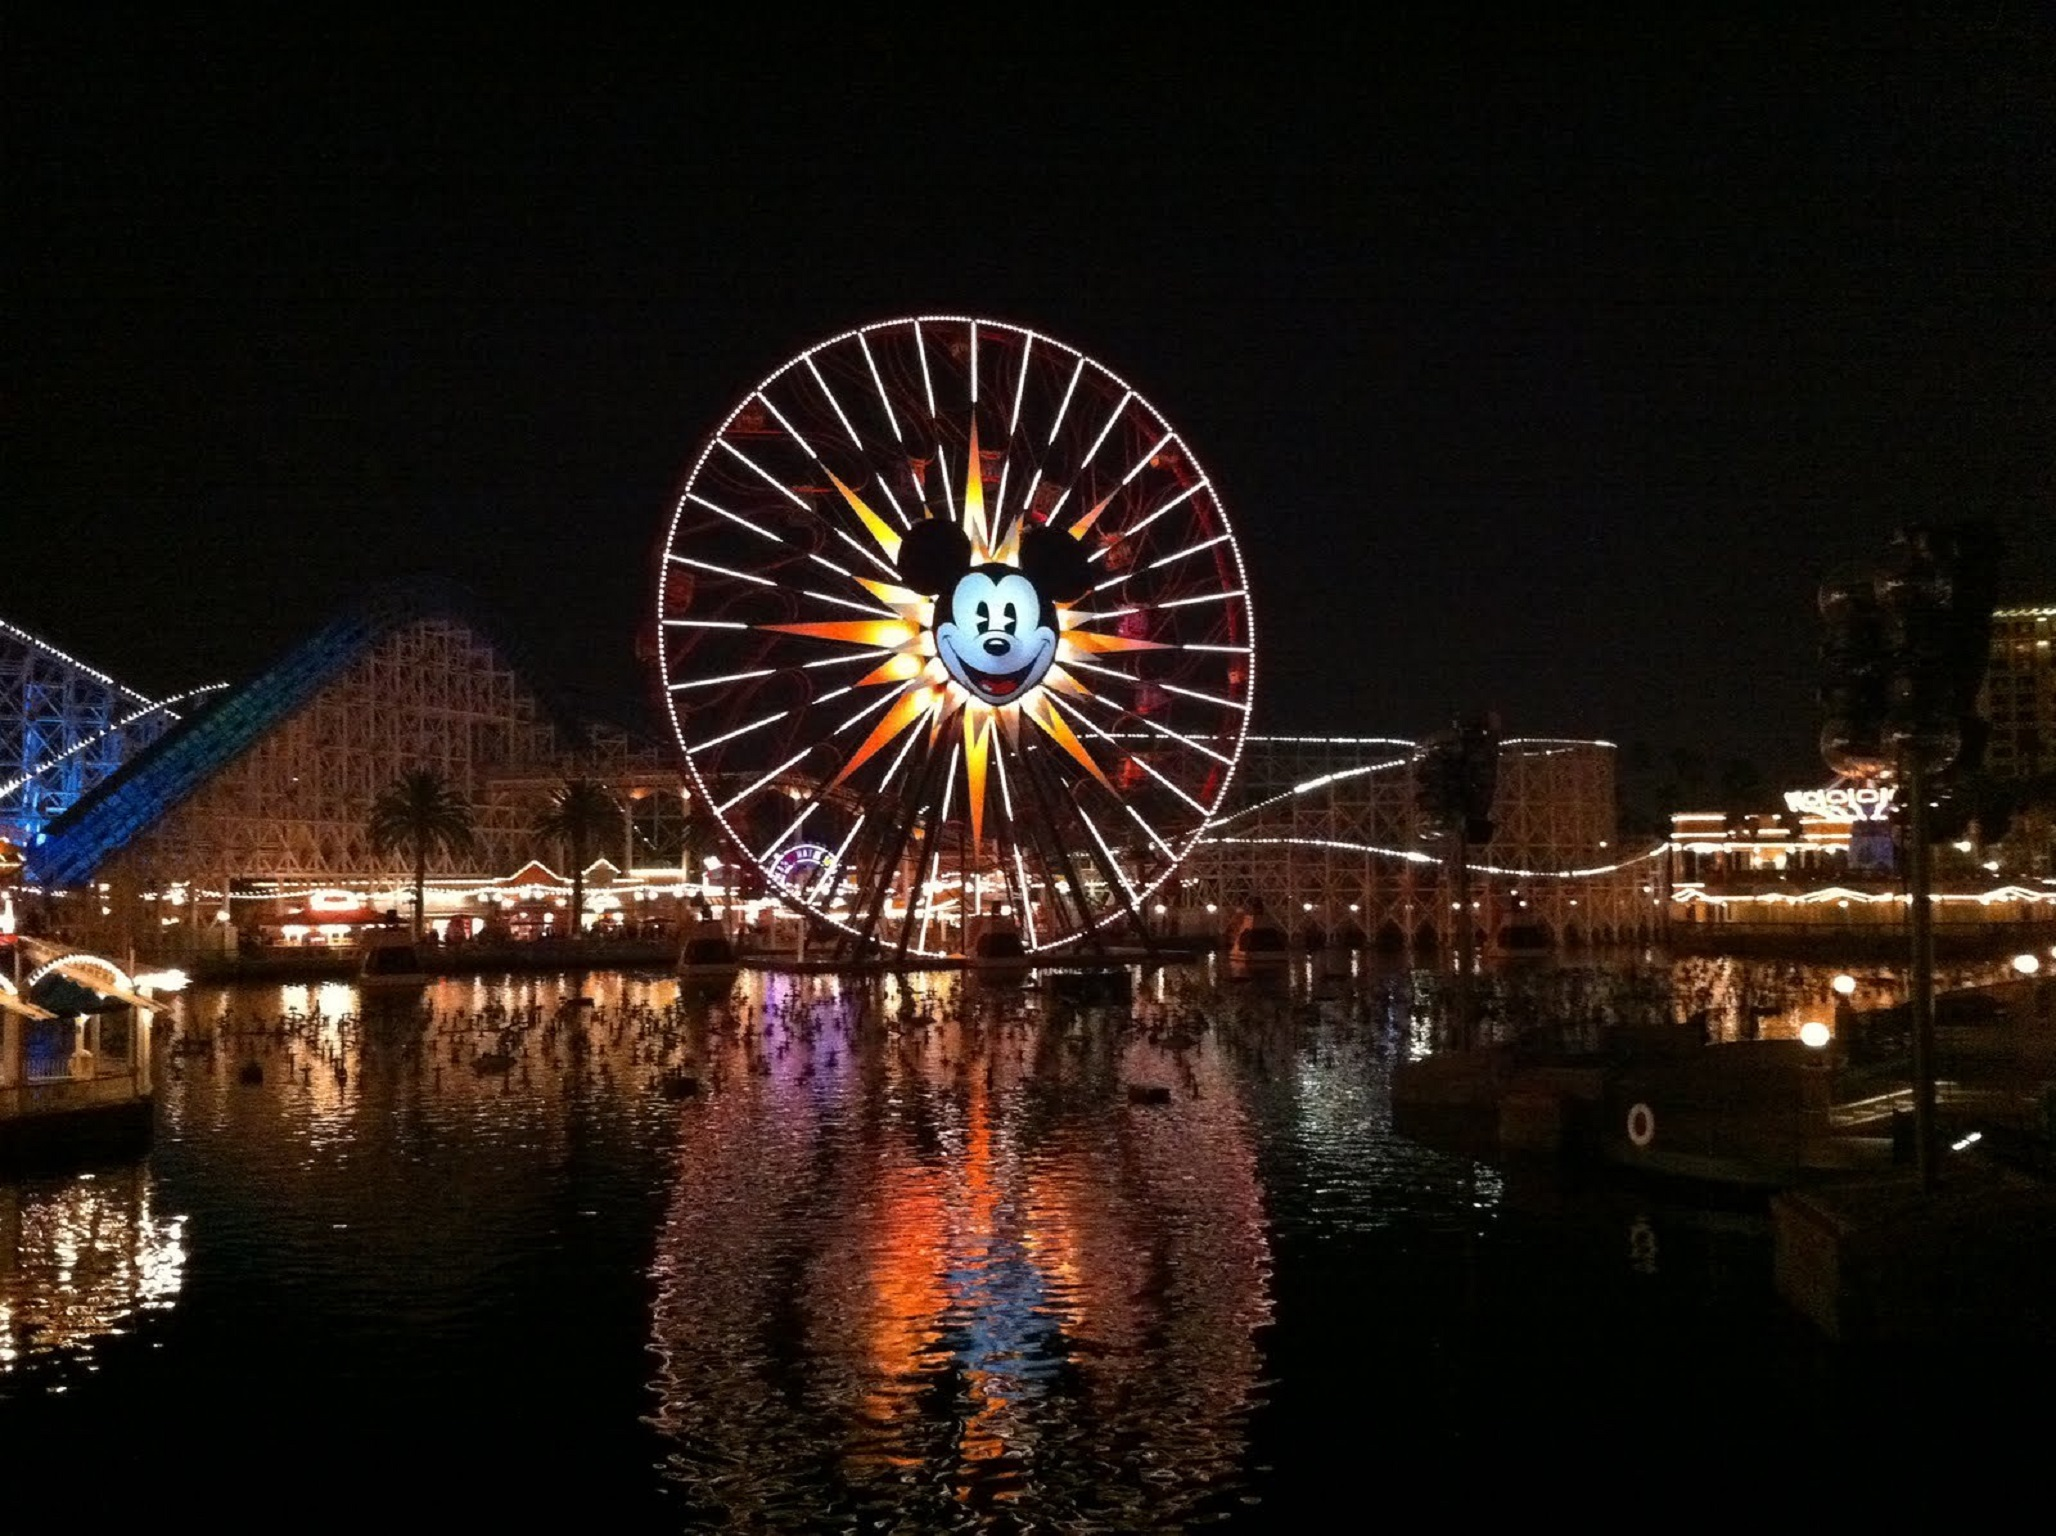 A ferris wheel with Mickey's face on it lit up in the dark